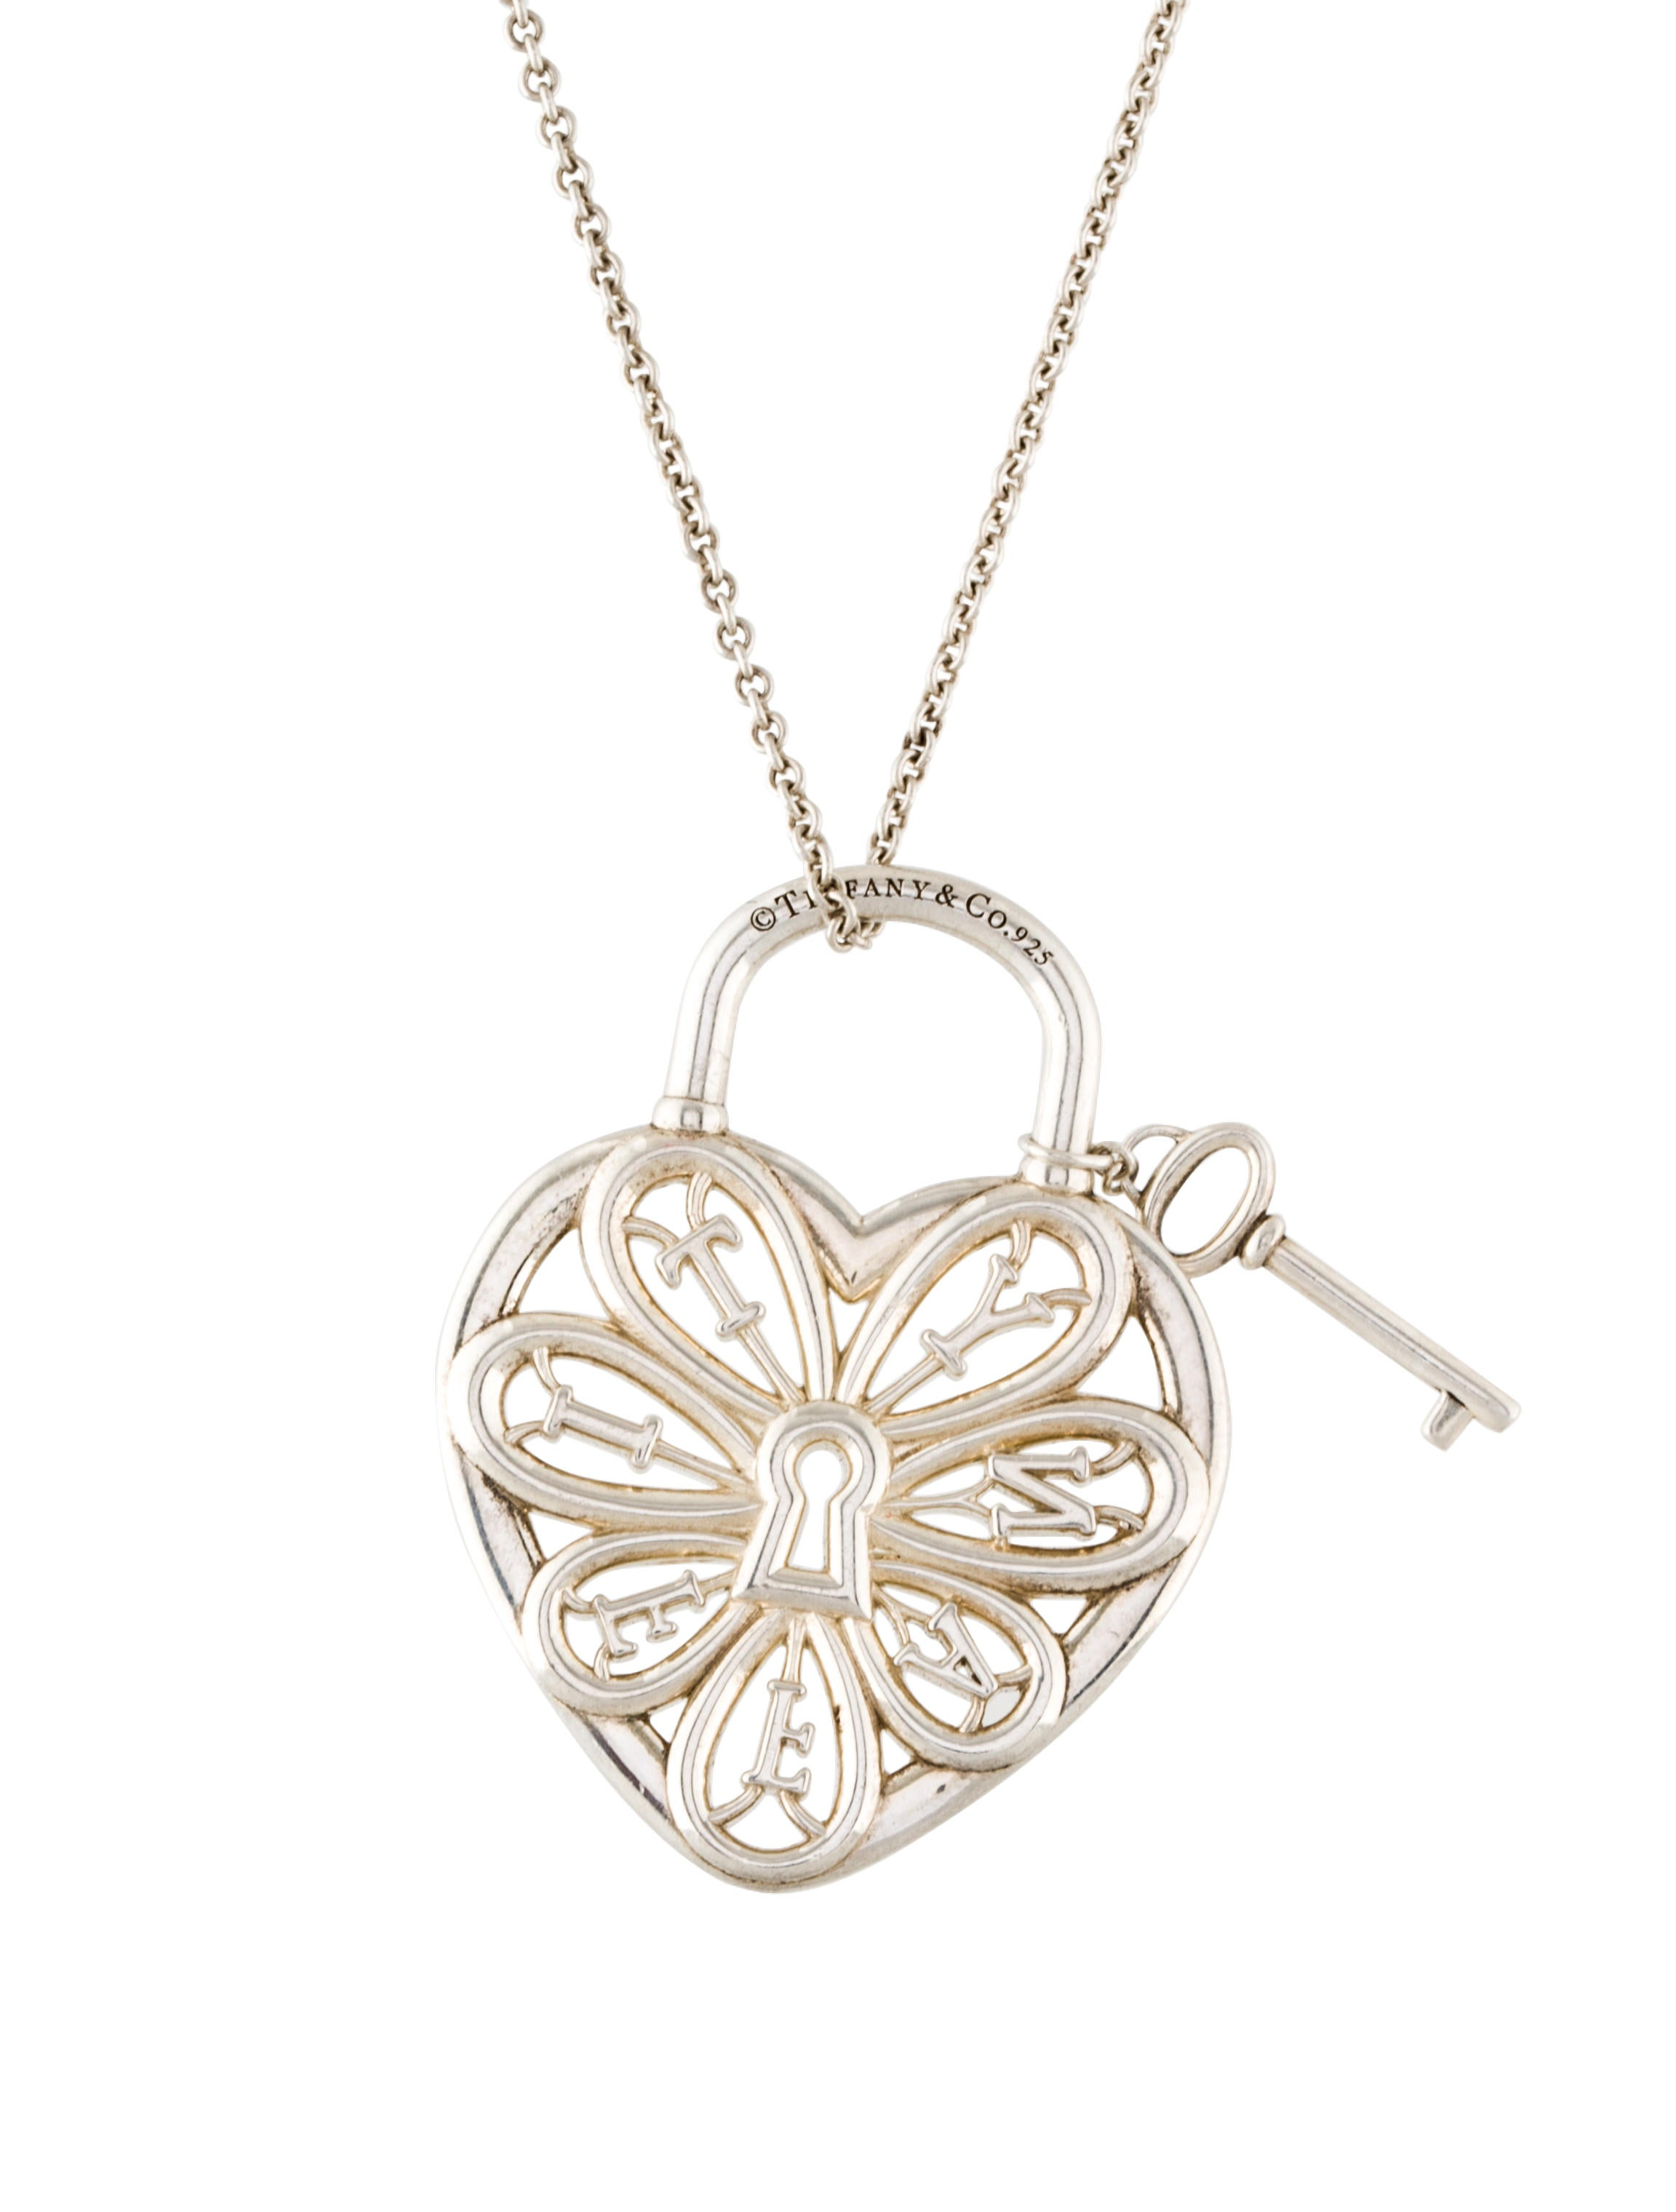 Beautiful tiffany filigree heart necklace with key jewellrys tiffany co filigree heart key pendant necklace necklaces aloadofball Choice Image